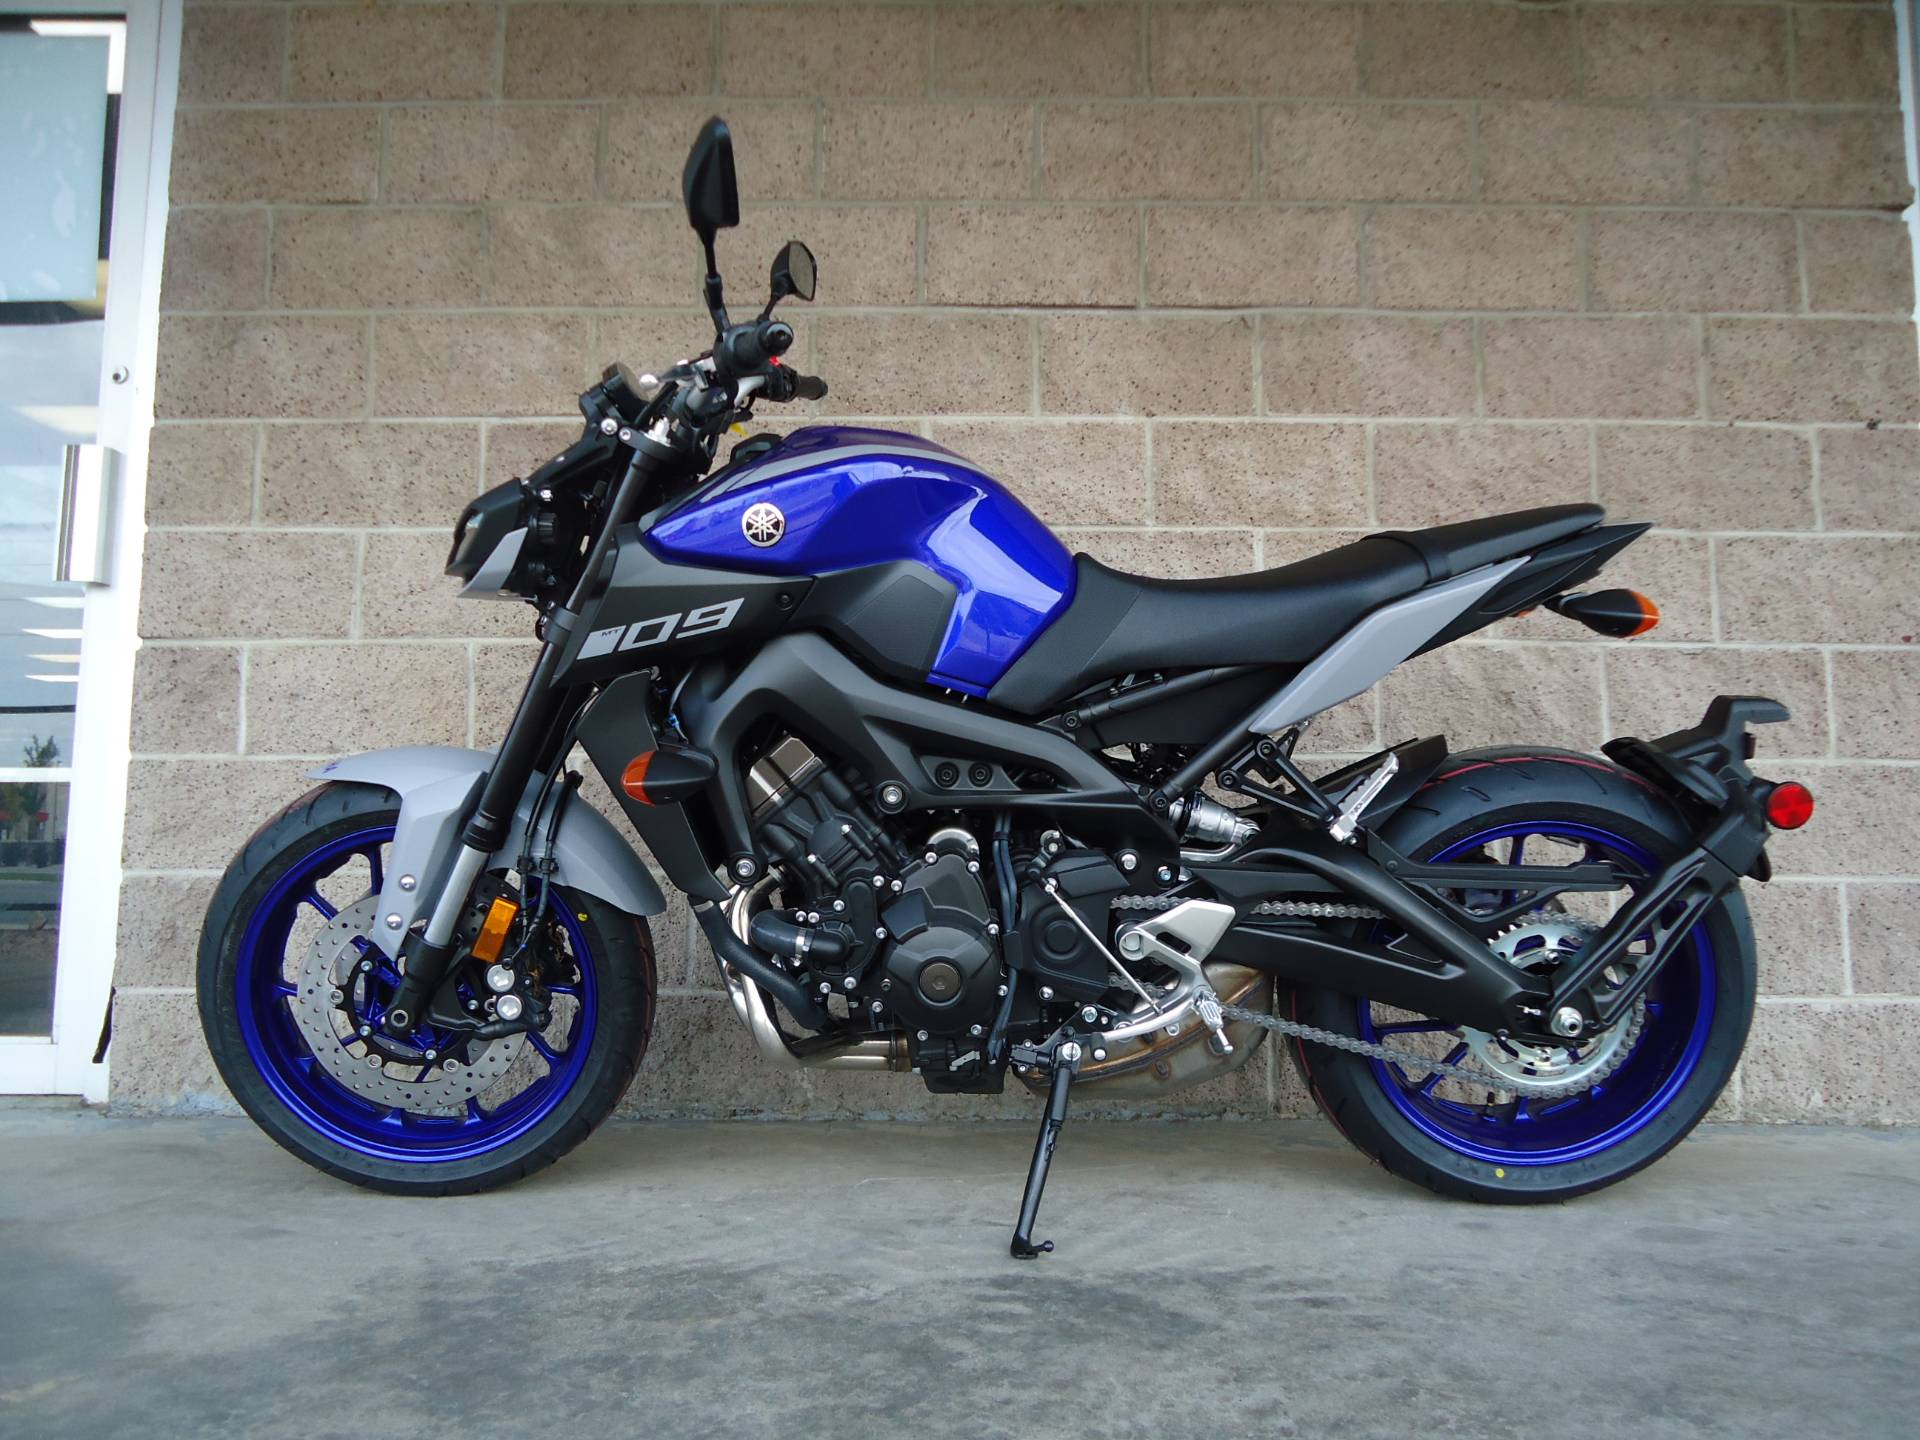 2020 Yamaha MT-09 in Denver, Colorado - Photo 2